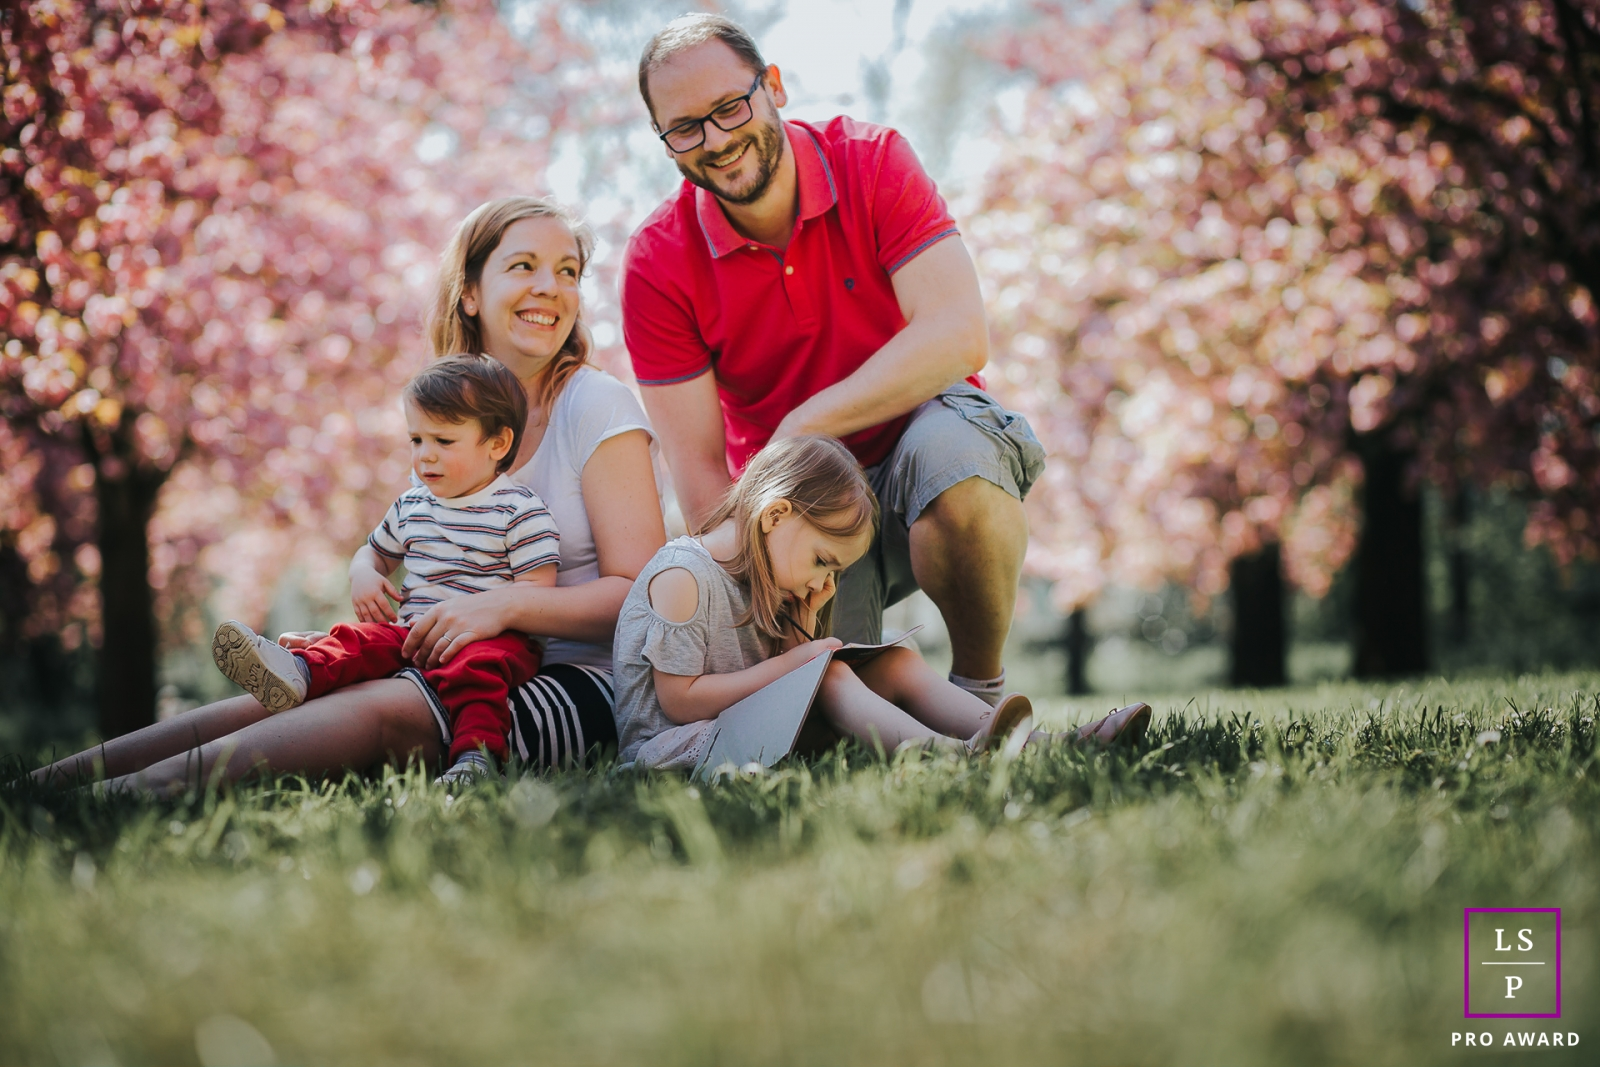 Ile-de-France Lifestyle Photography for the Family | Image contains: grass, husband, wife, kids, trees, park